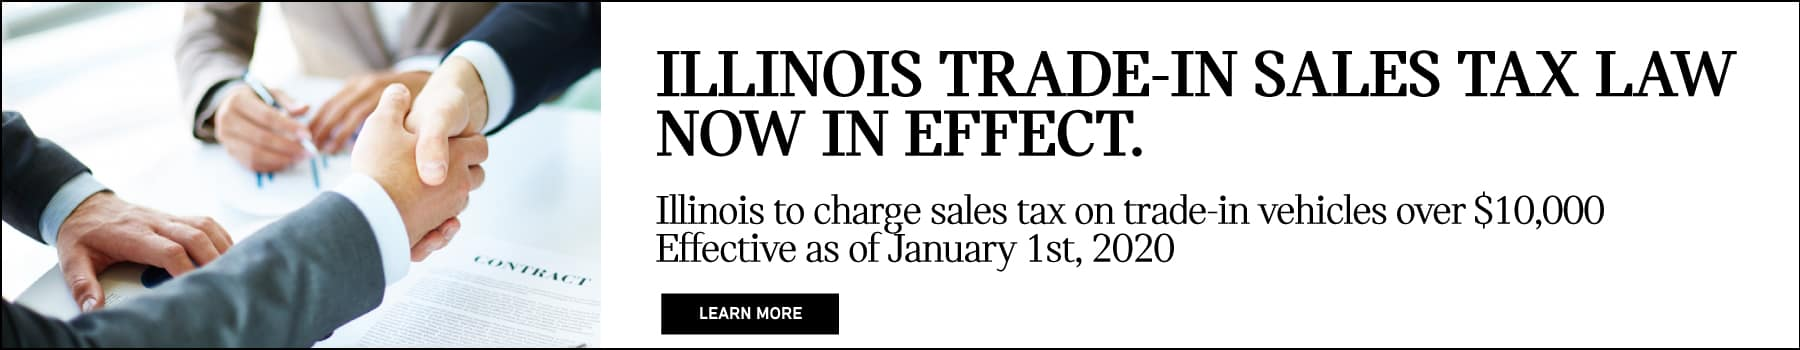 ILLINOIS TRADE-IN SALES TAX LAW NOW IN EFFECT. Illinois to charge sales tax on trade-in vehicles over $10,000 effective as of January 1st, 2020.